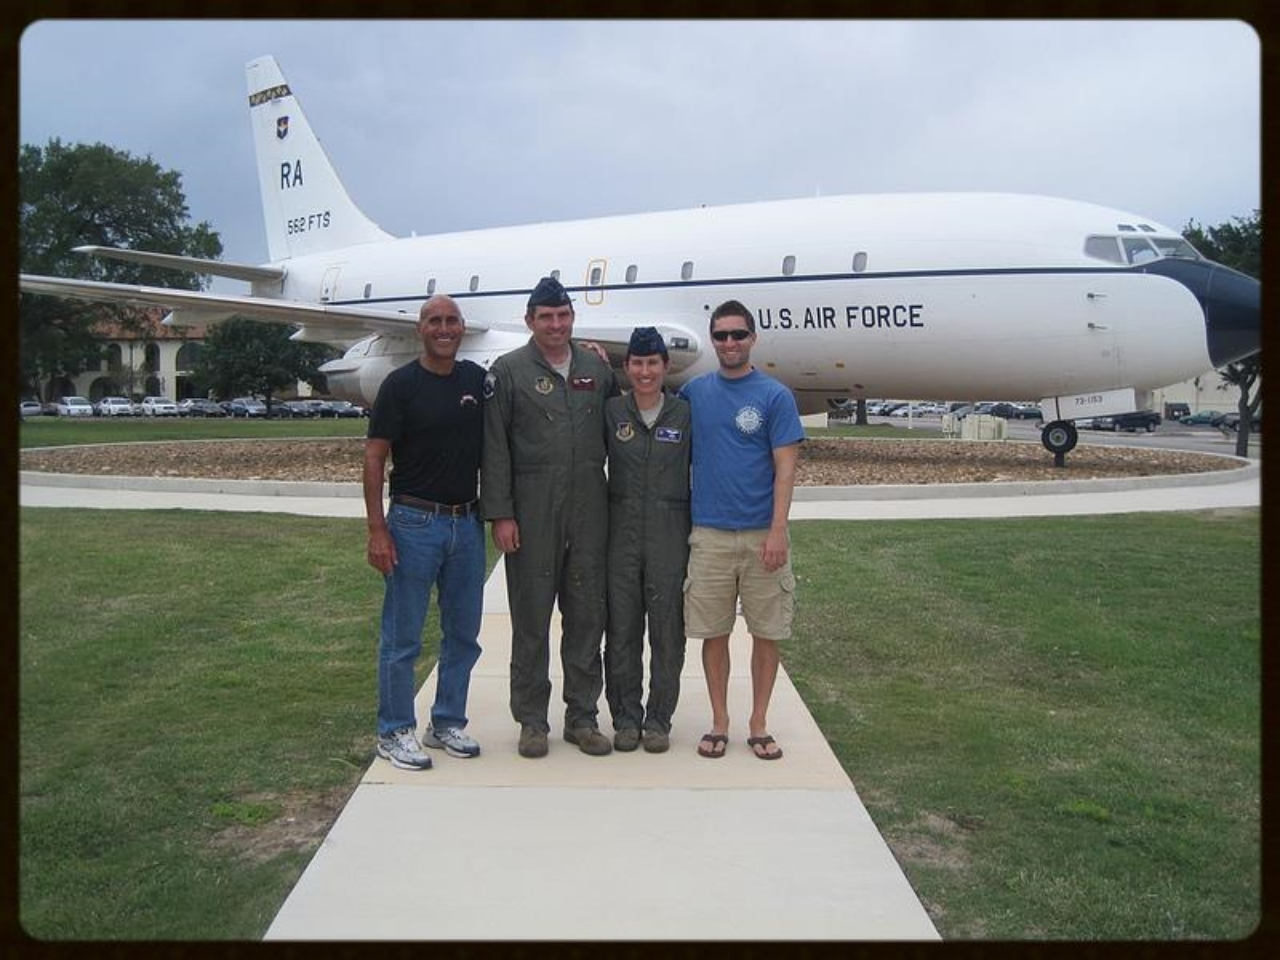 Monday, May 6, 2013. With my son-in-law and daughter, Instructor Pilots, Captains Craig and  Catherine Christ , and my son, Bobby Ankony, Boeing Defense, Space & Security engineer. Randolf Air Force Base, Texas.